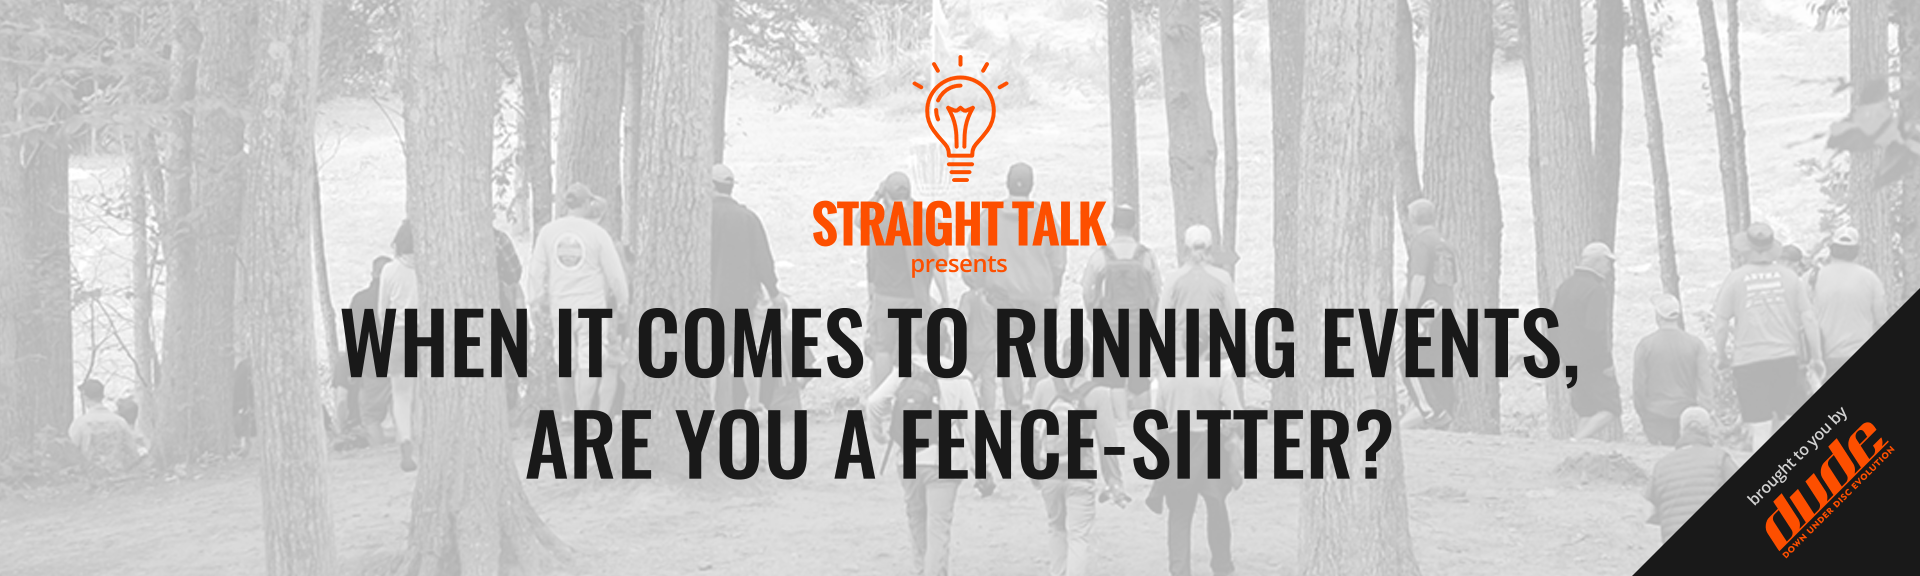 Dude Clothing Straight Talk When It Comes To Running Events, Are You A Fence-Sitter?